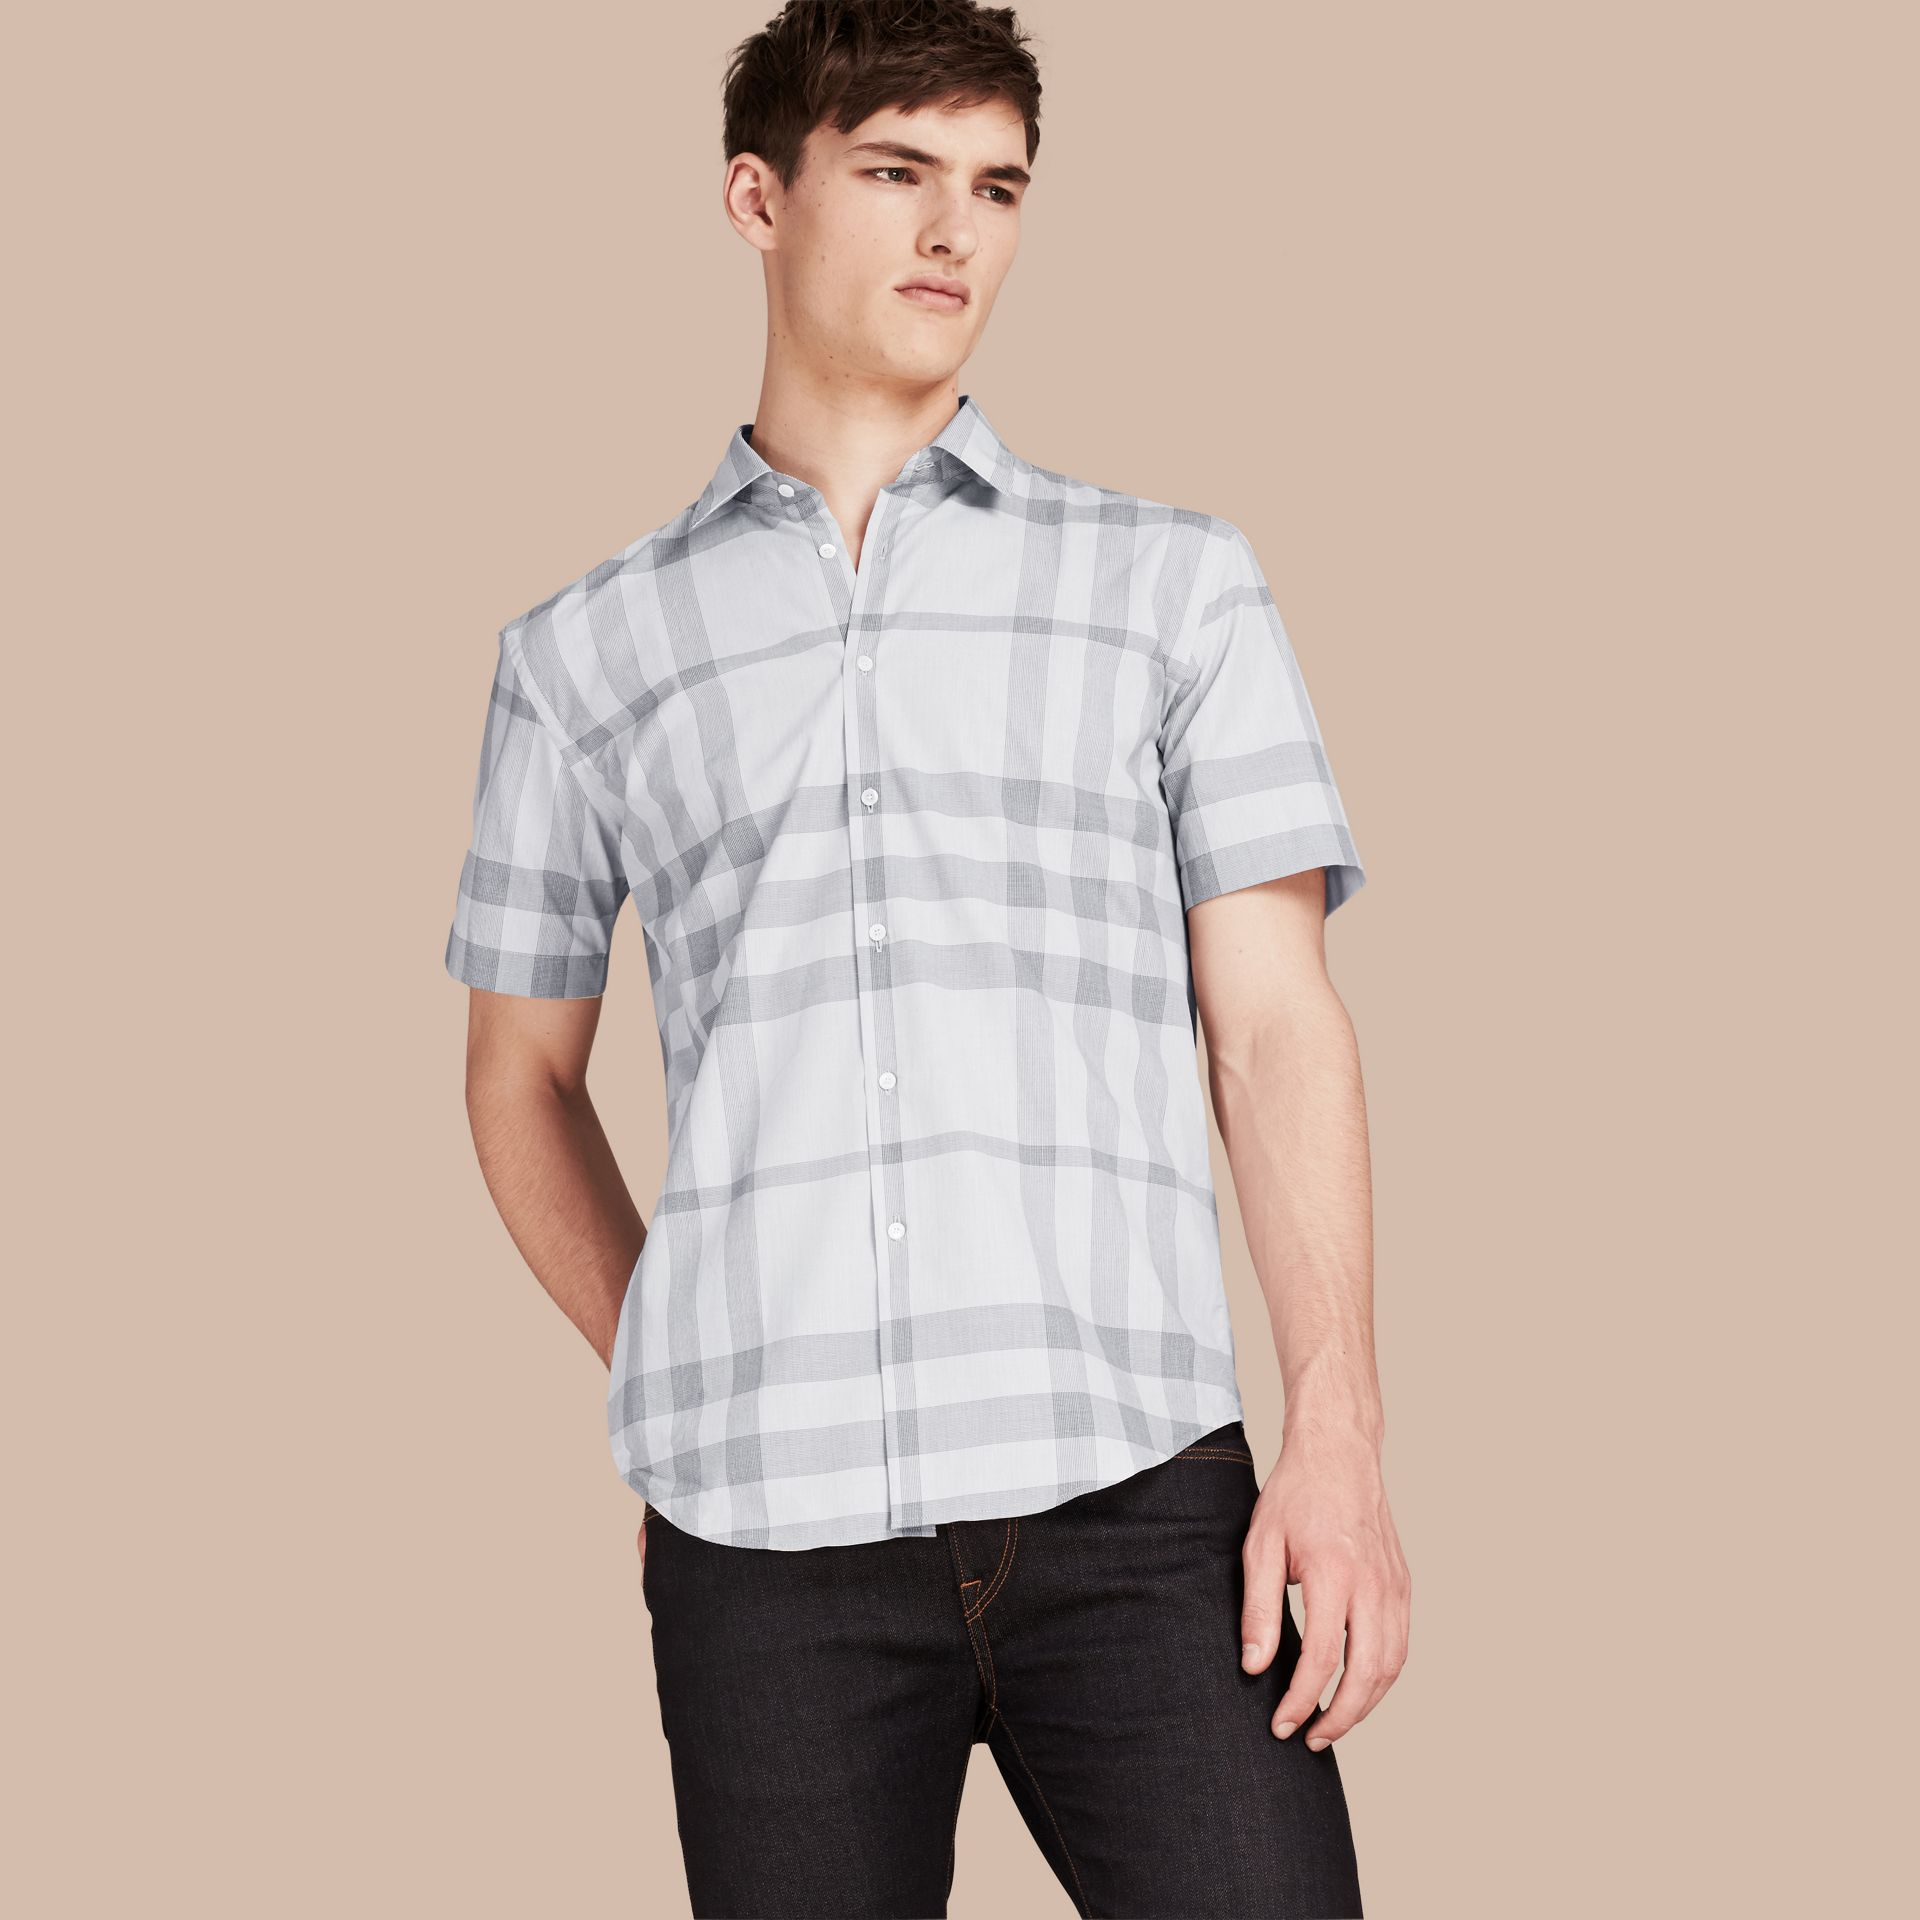 Pale grey Short-sleeved Check Cotton Shirt Pale Grey - gallery image 1